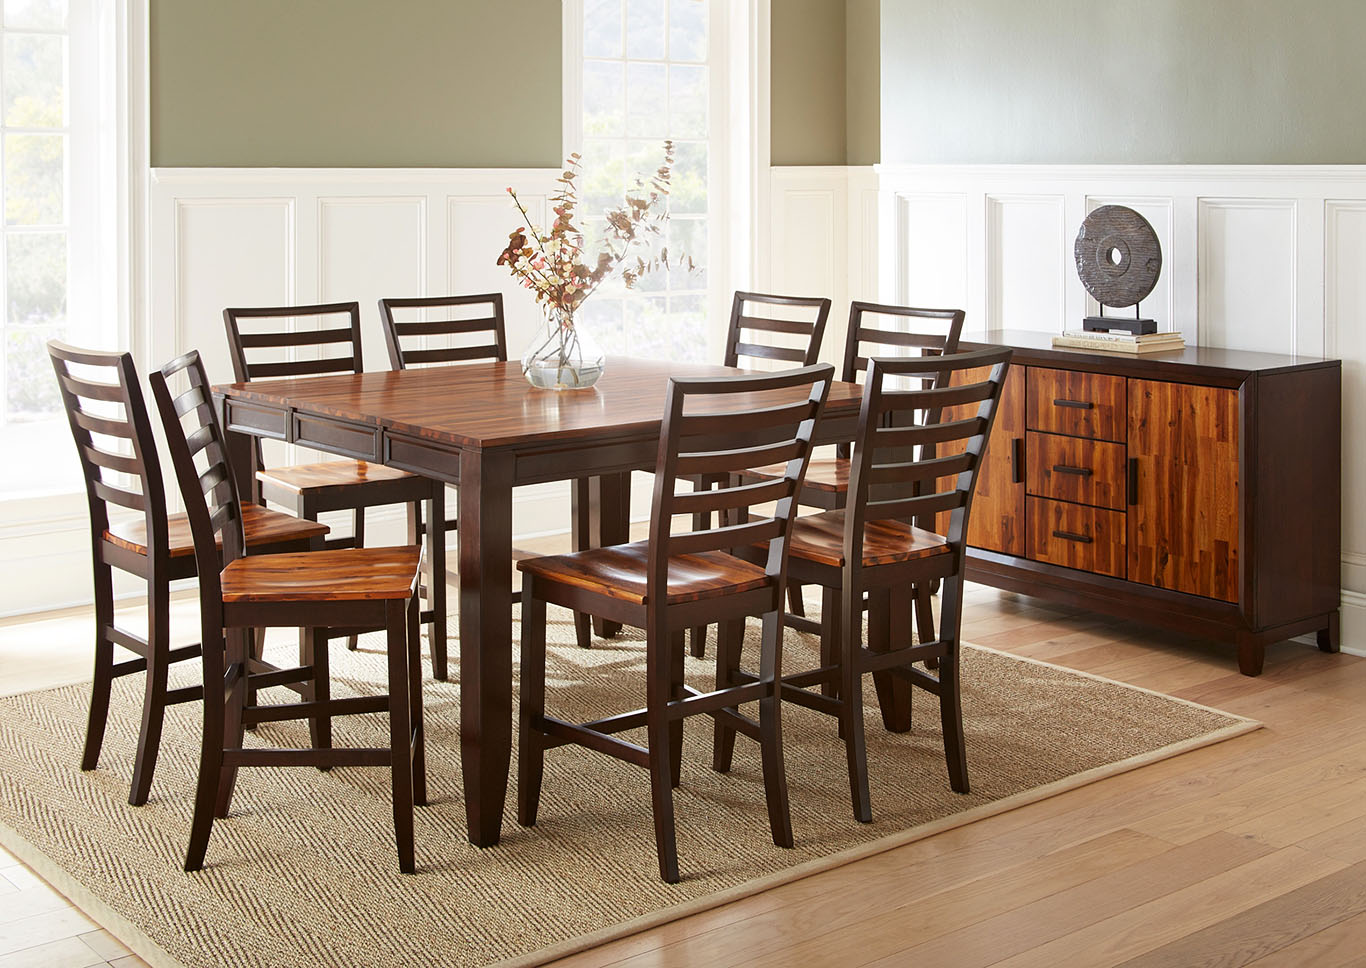 Abaco Brown Rectangular Dining Set W/ 6 Chairs & Sideboard,Steve Silver